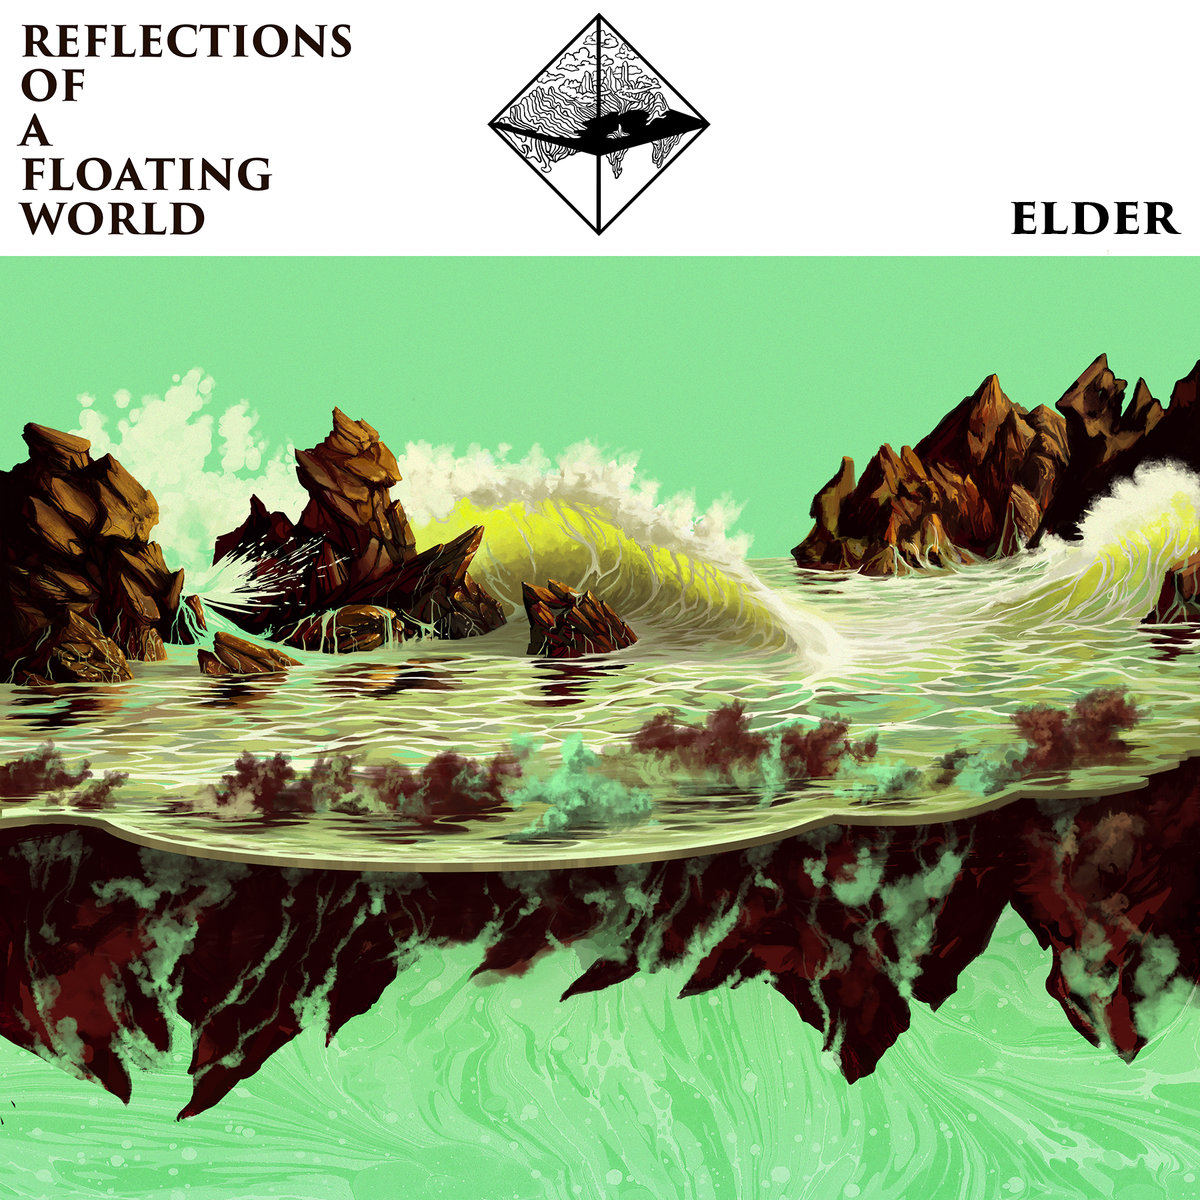 elder-reflections-of-a-floating-world-adrian-dexter